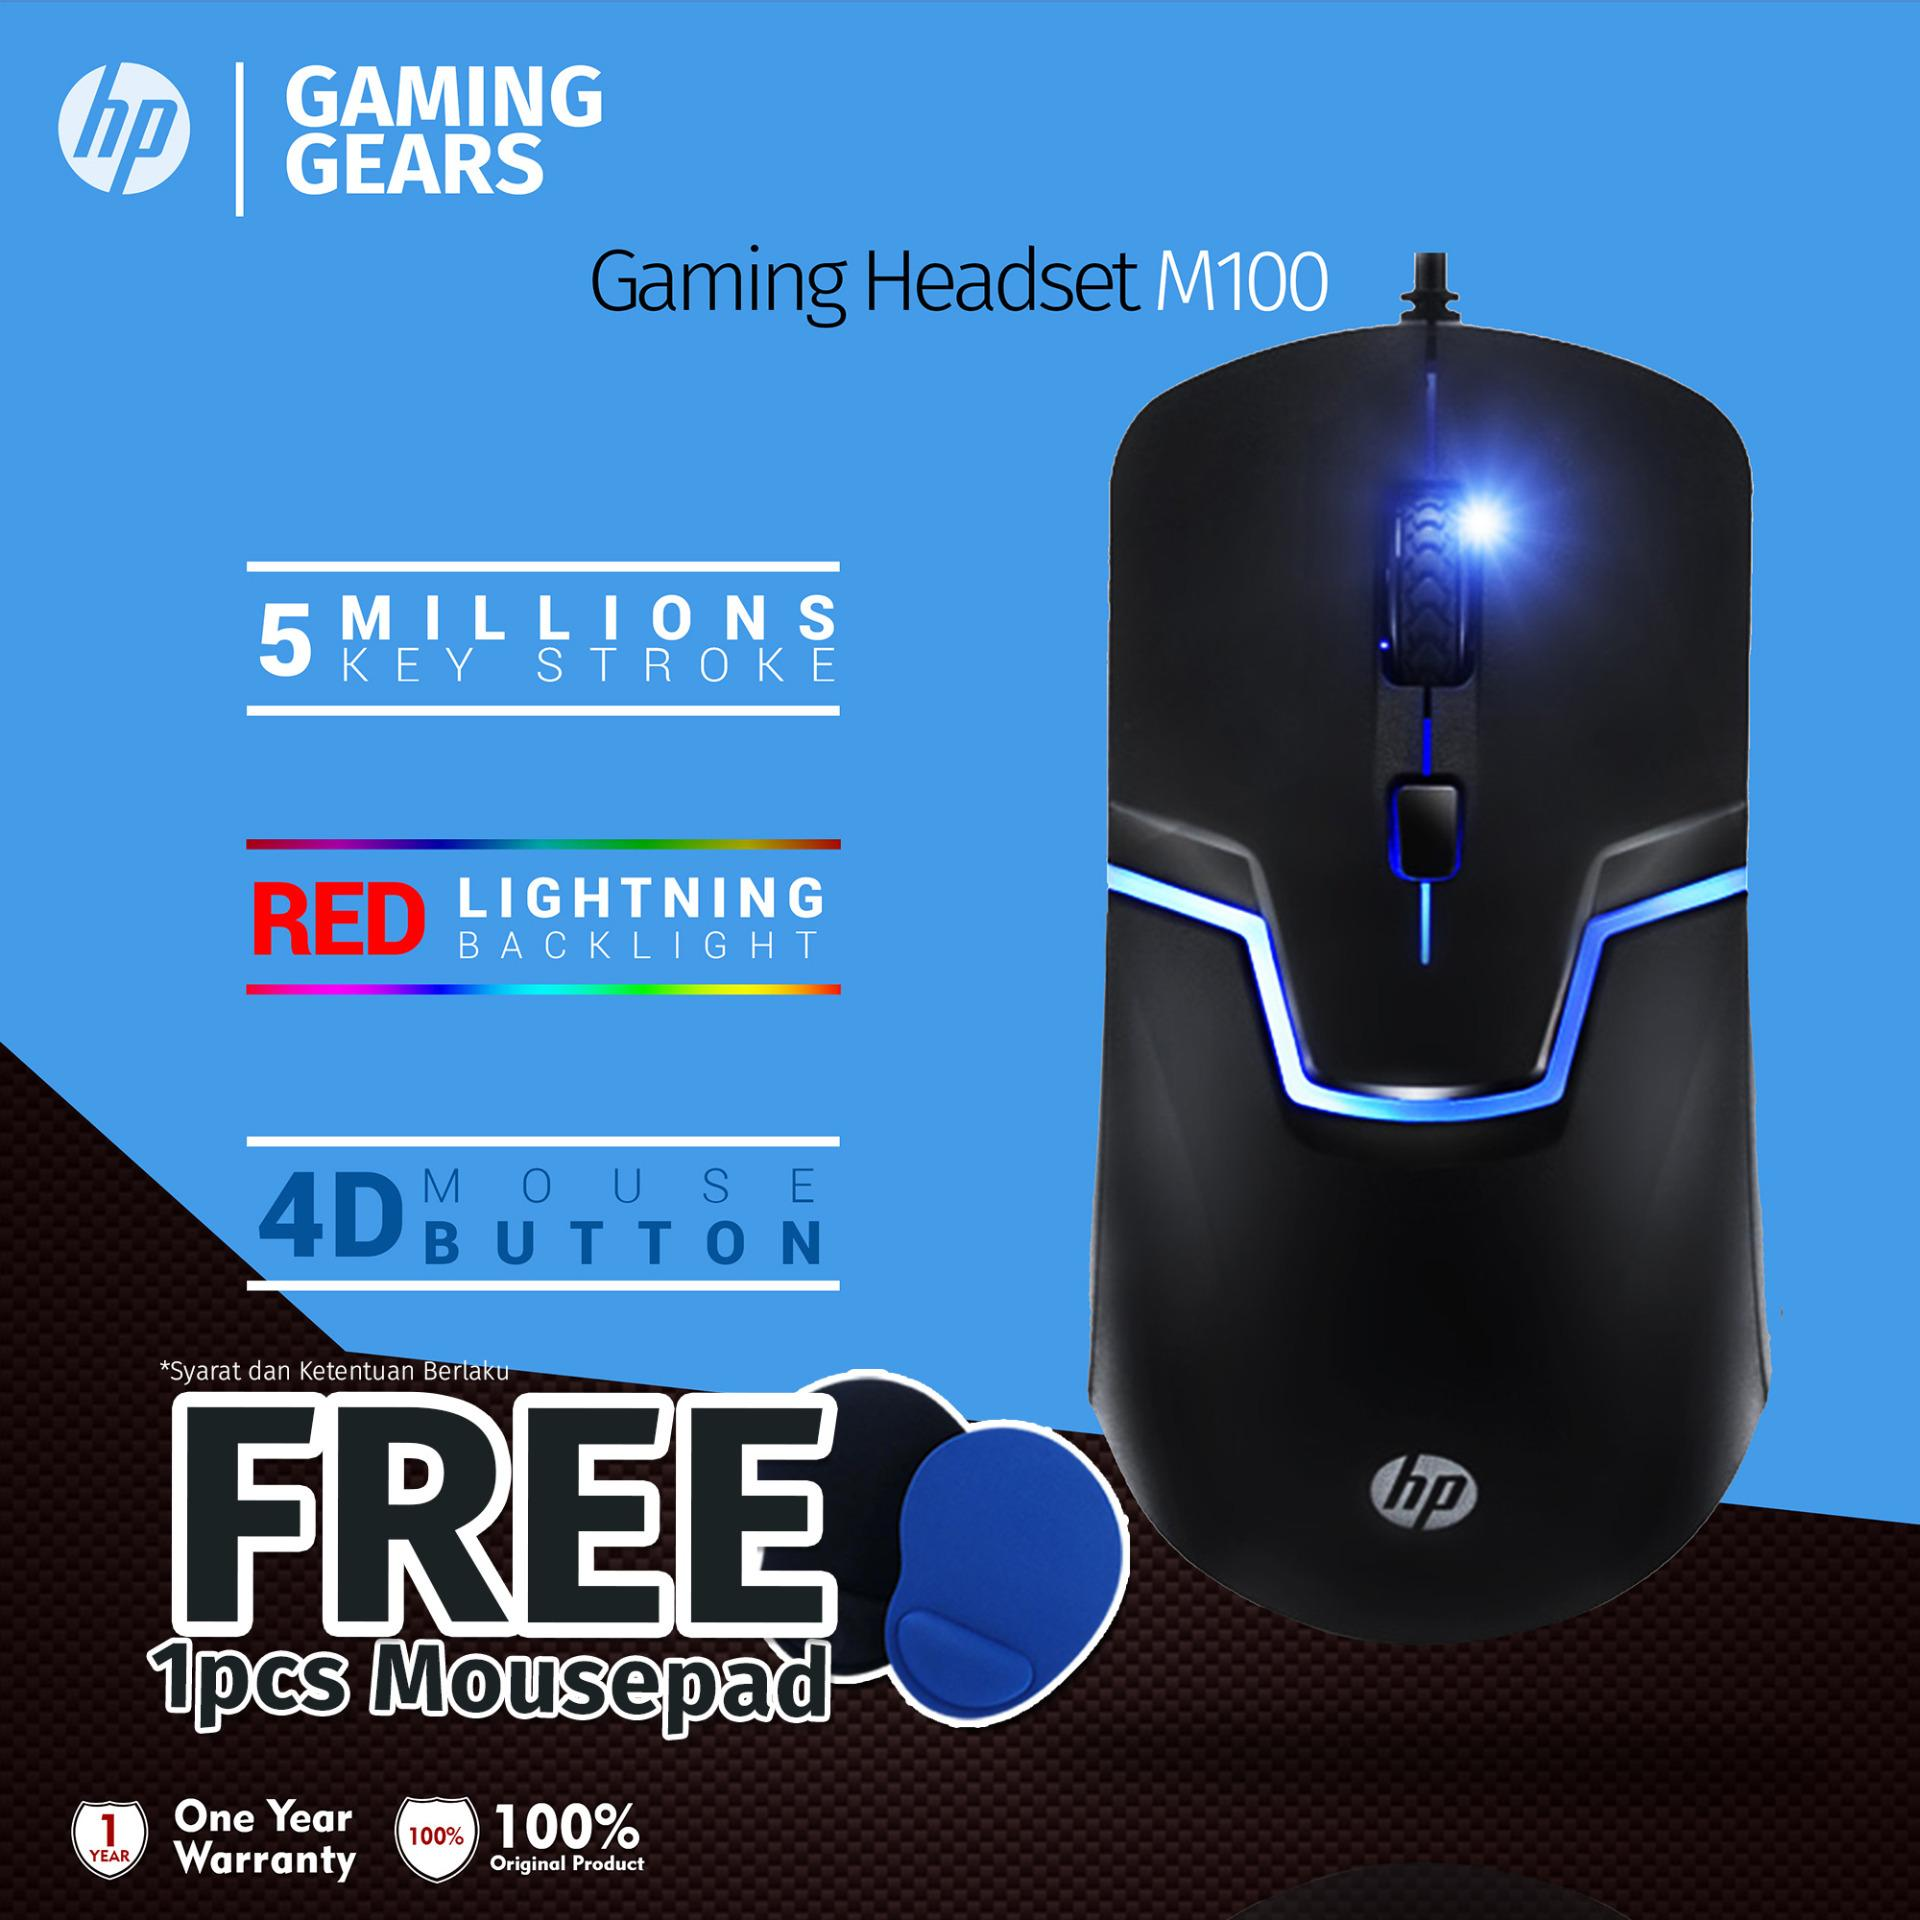 Fantech Mouse Gaming G10 Hitam Gratis Mousepad Mp 25 Spec Wireless W556 Mp25 Detail Gambar Hp M100 Terbaru